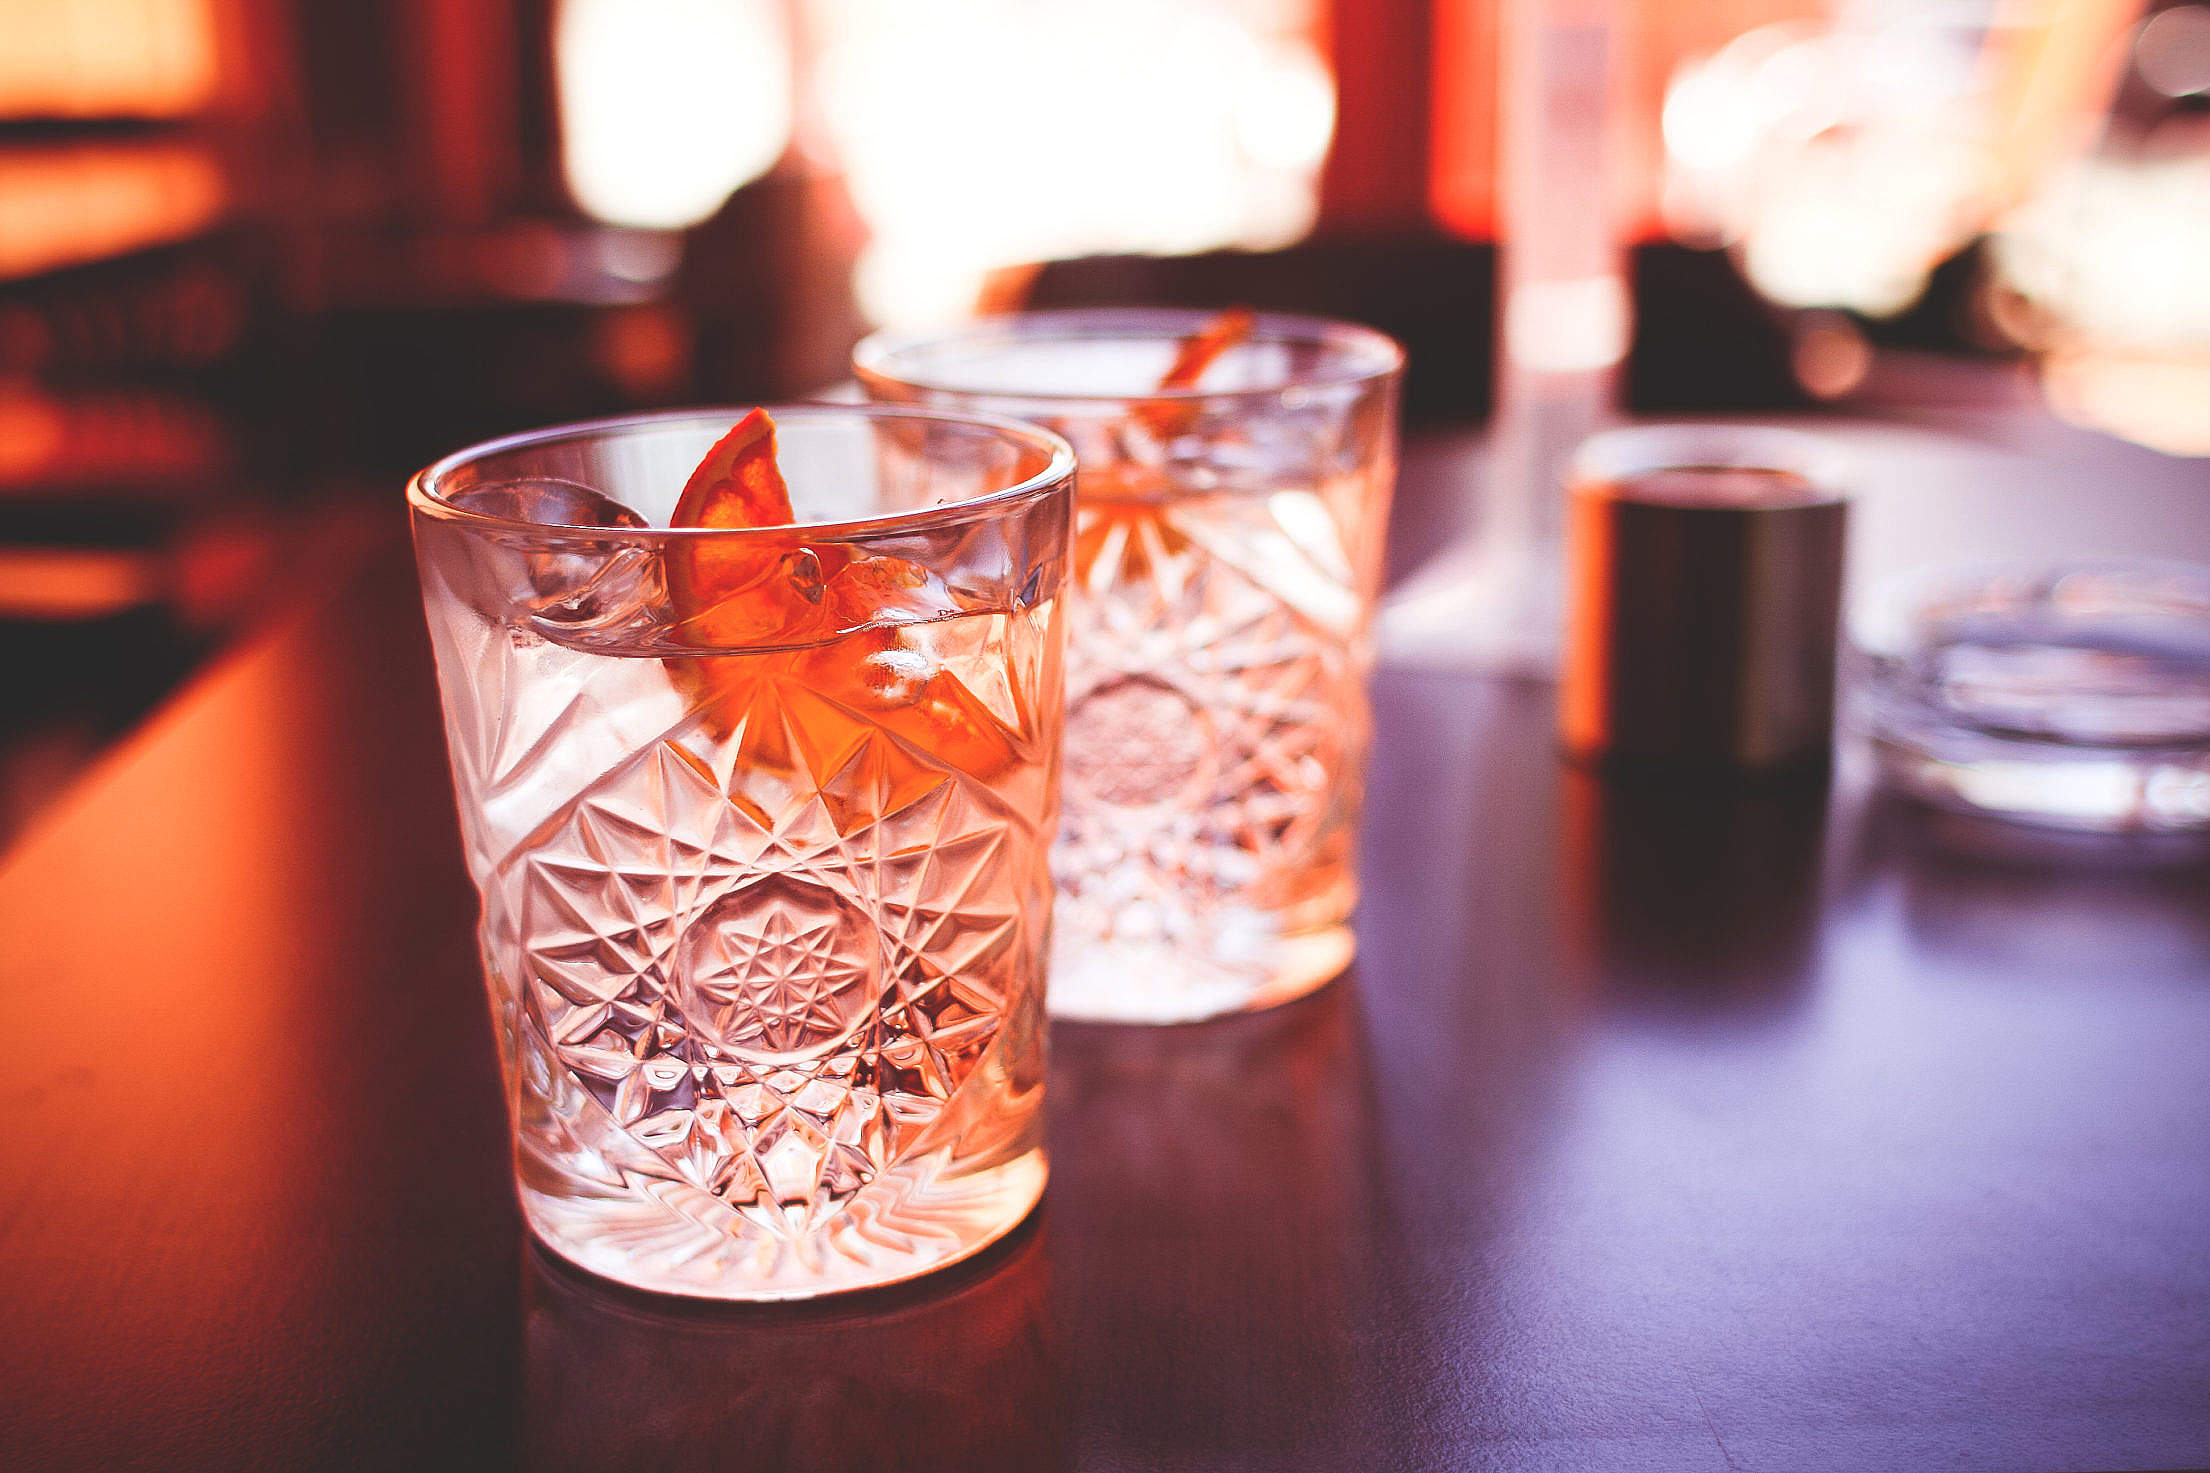 Another Cool Drinks with Dried Orange Free Stock Photo